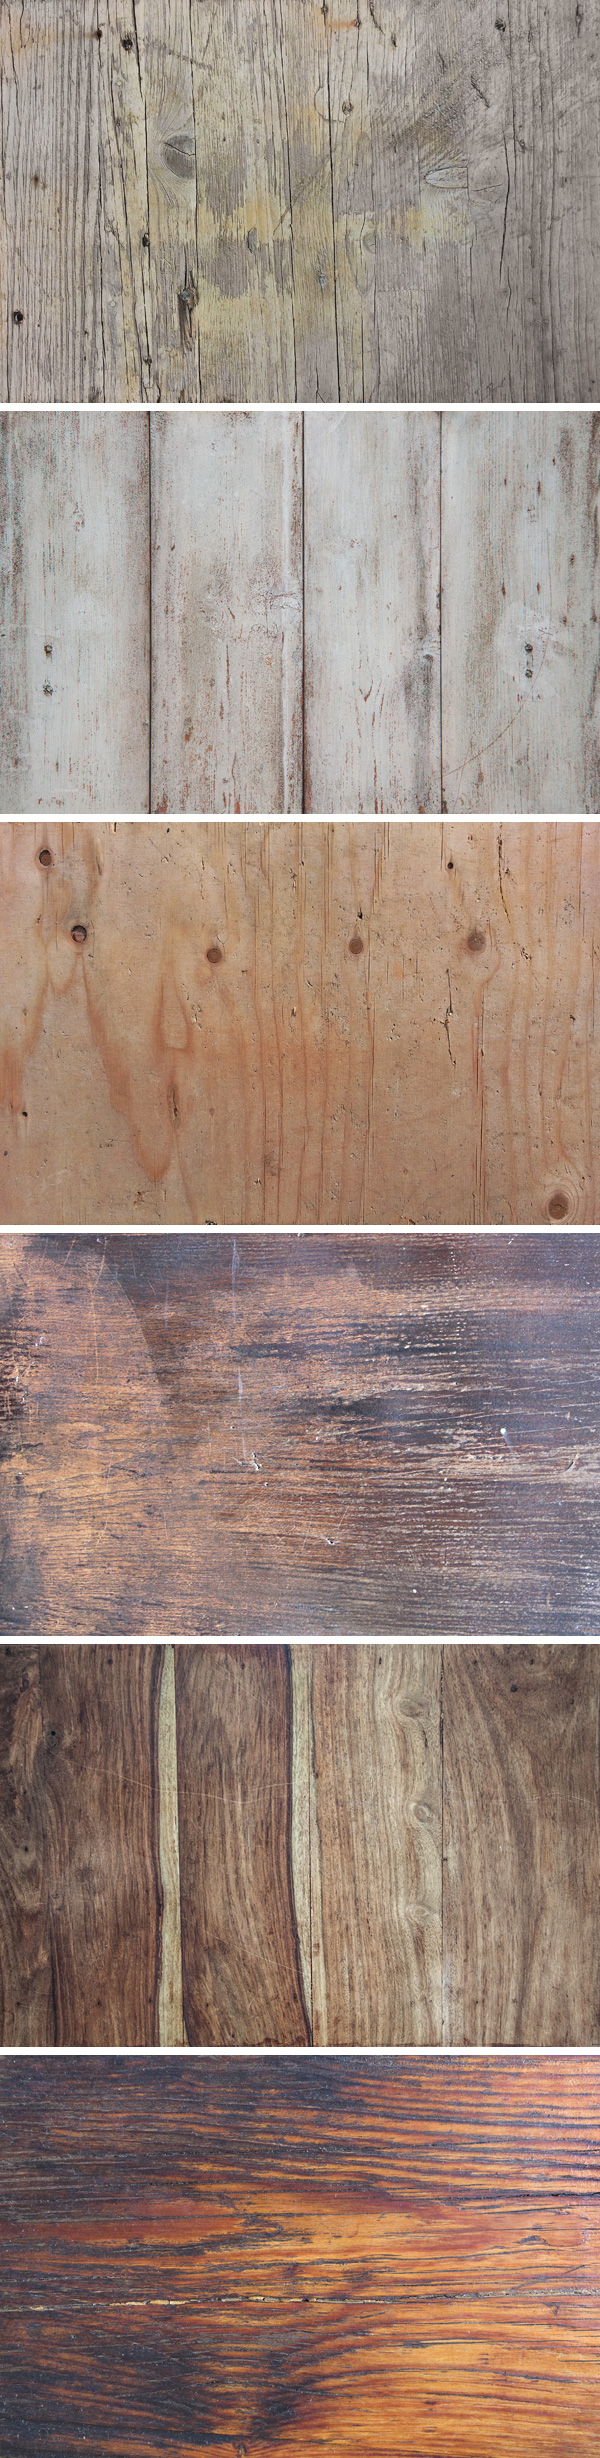 12 Free Vintage Wood Textures Backgrounds 2015